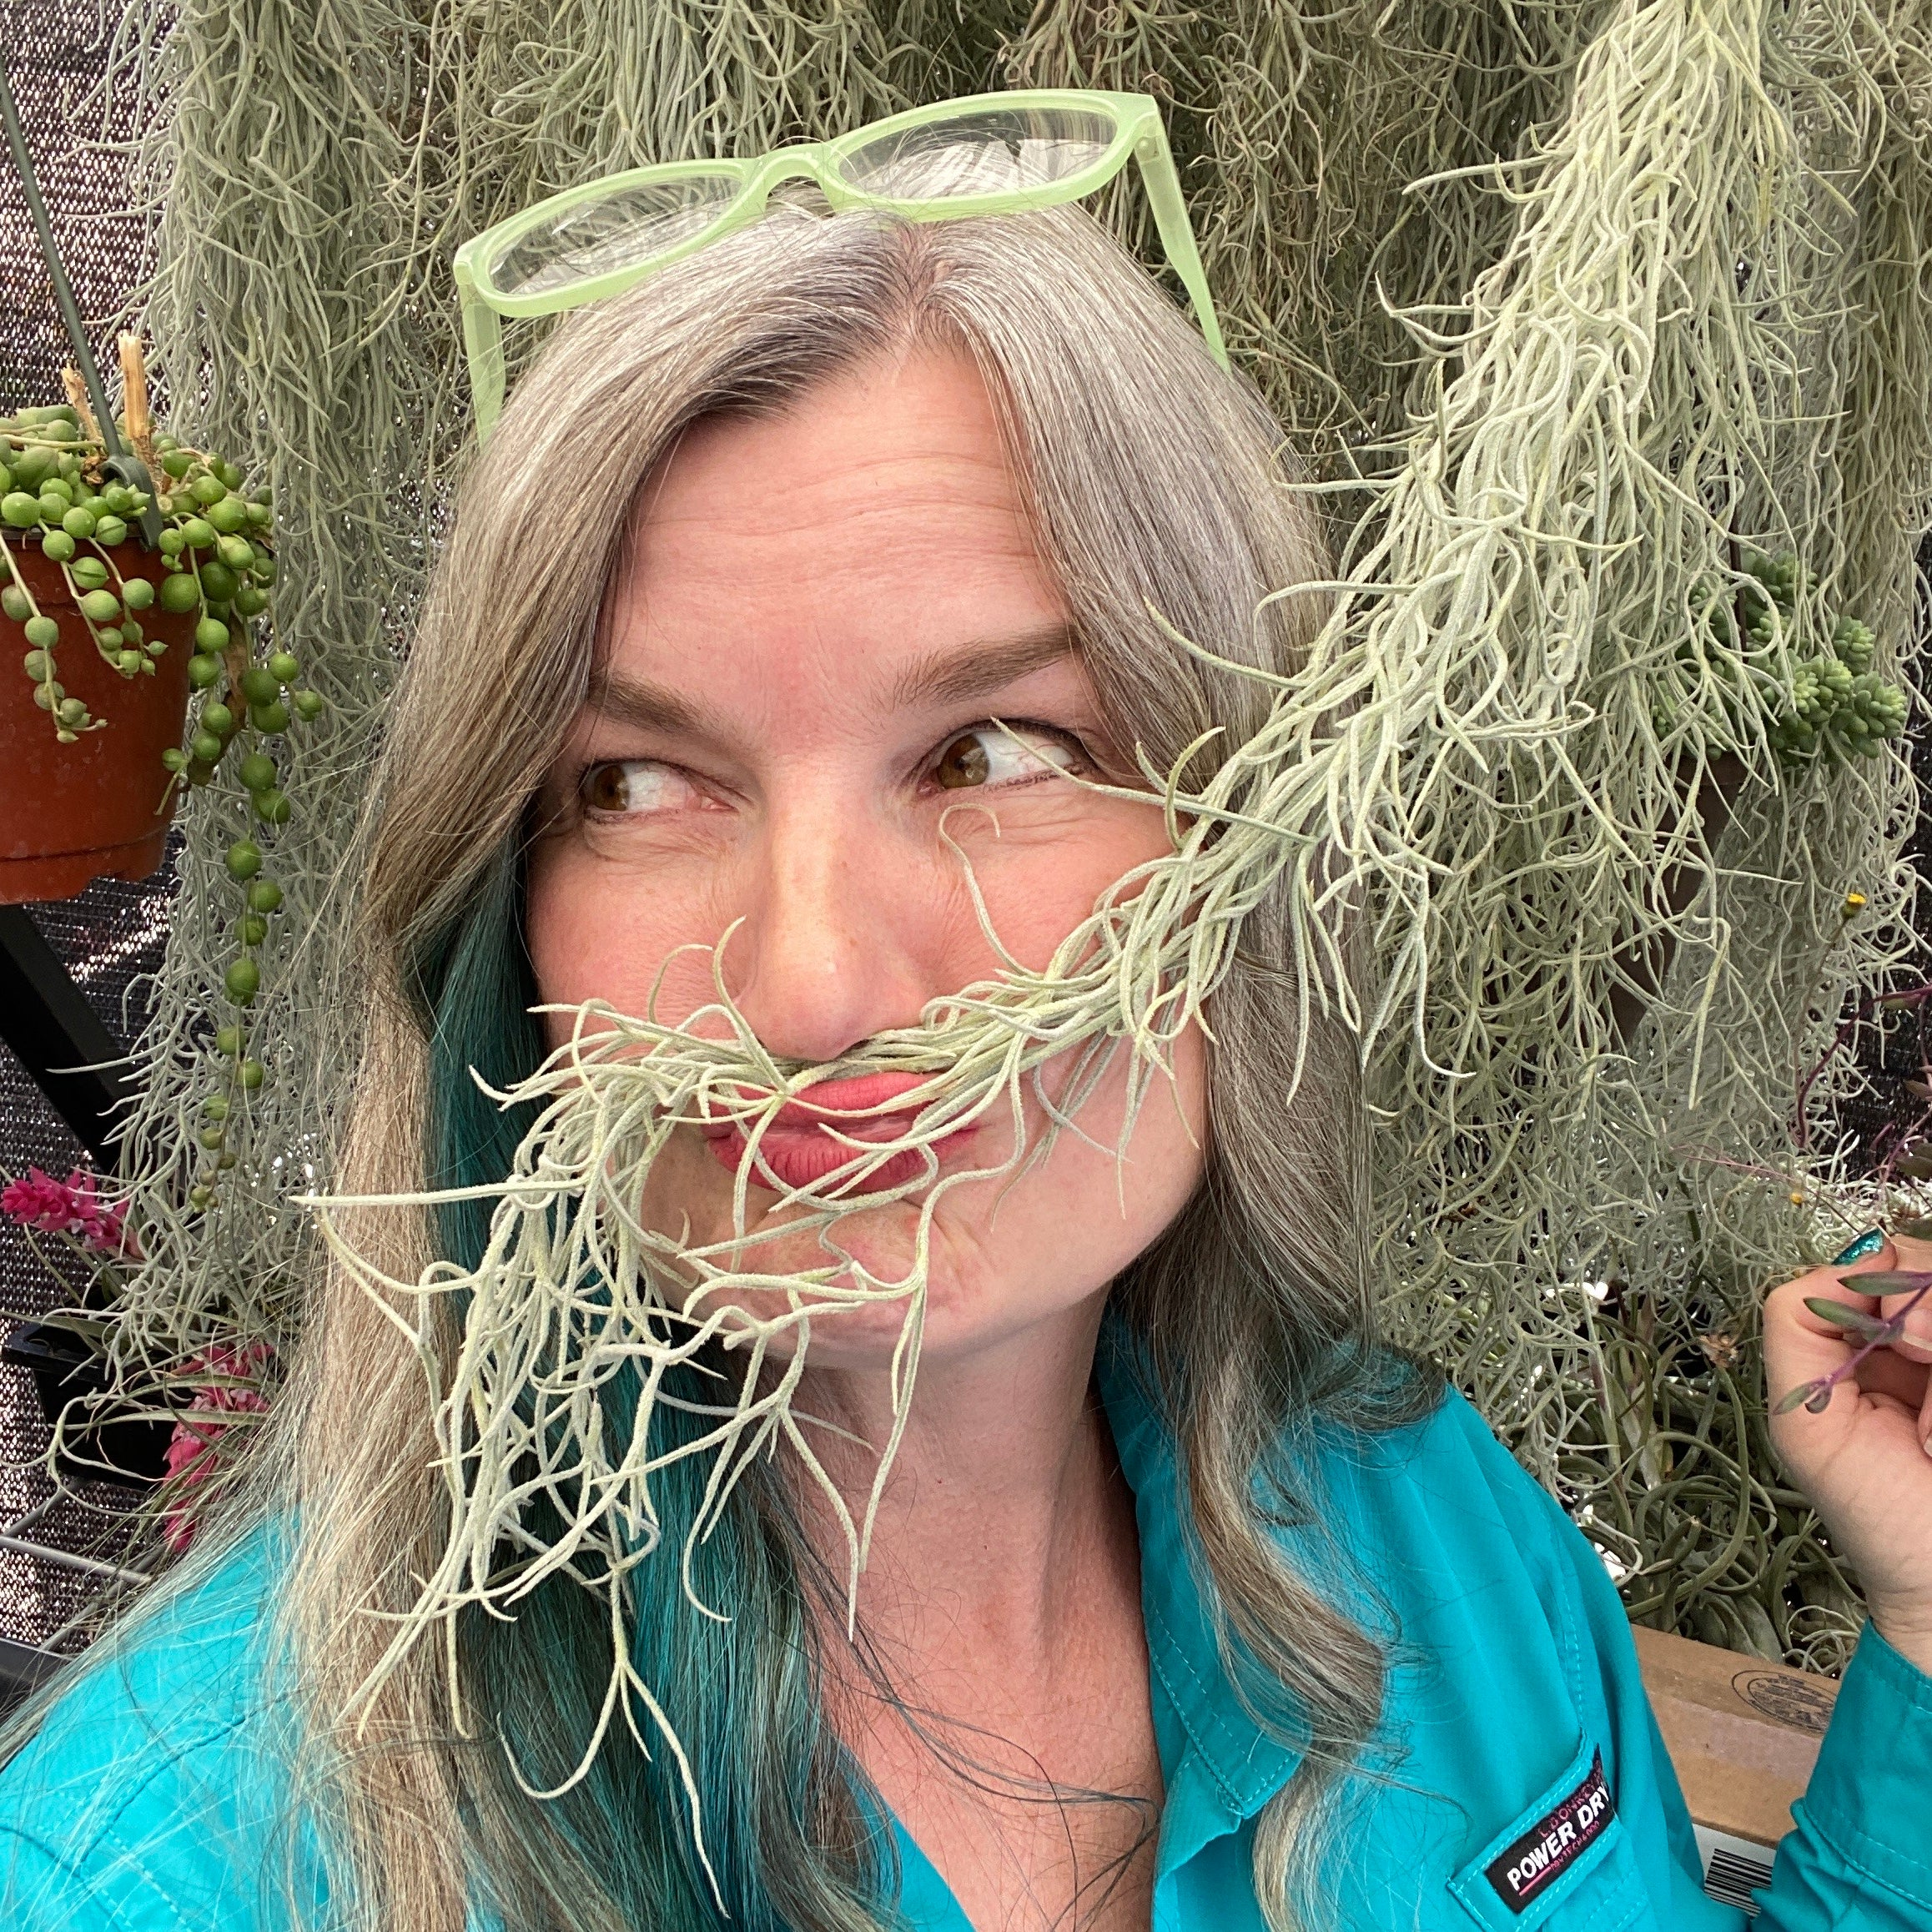 Portrait of Partly Sunny Projects' founder Sonja using a plant as a moustache